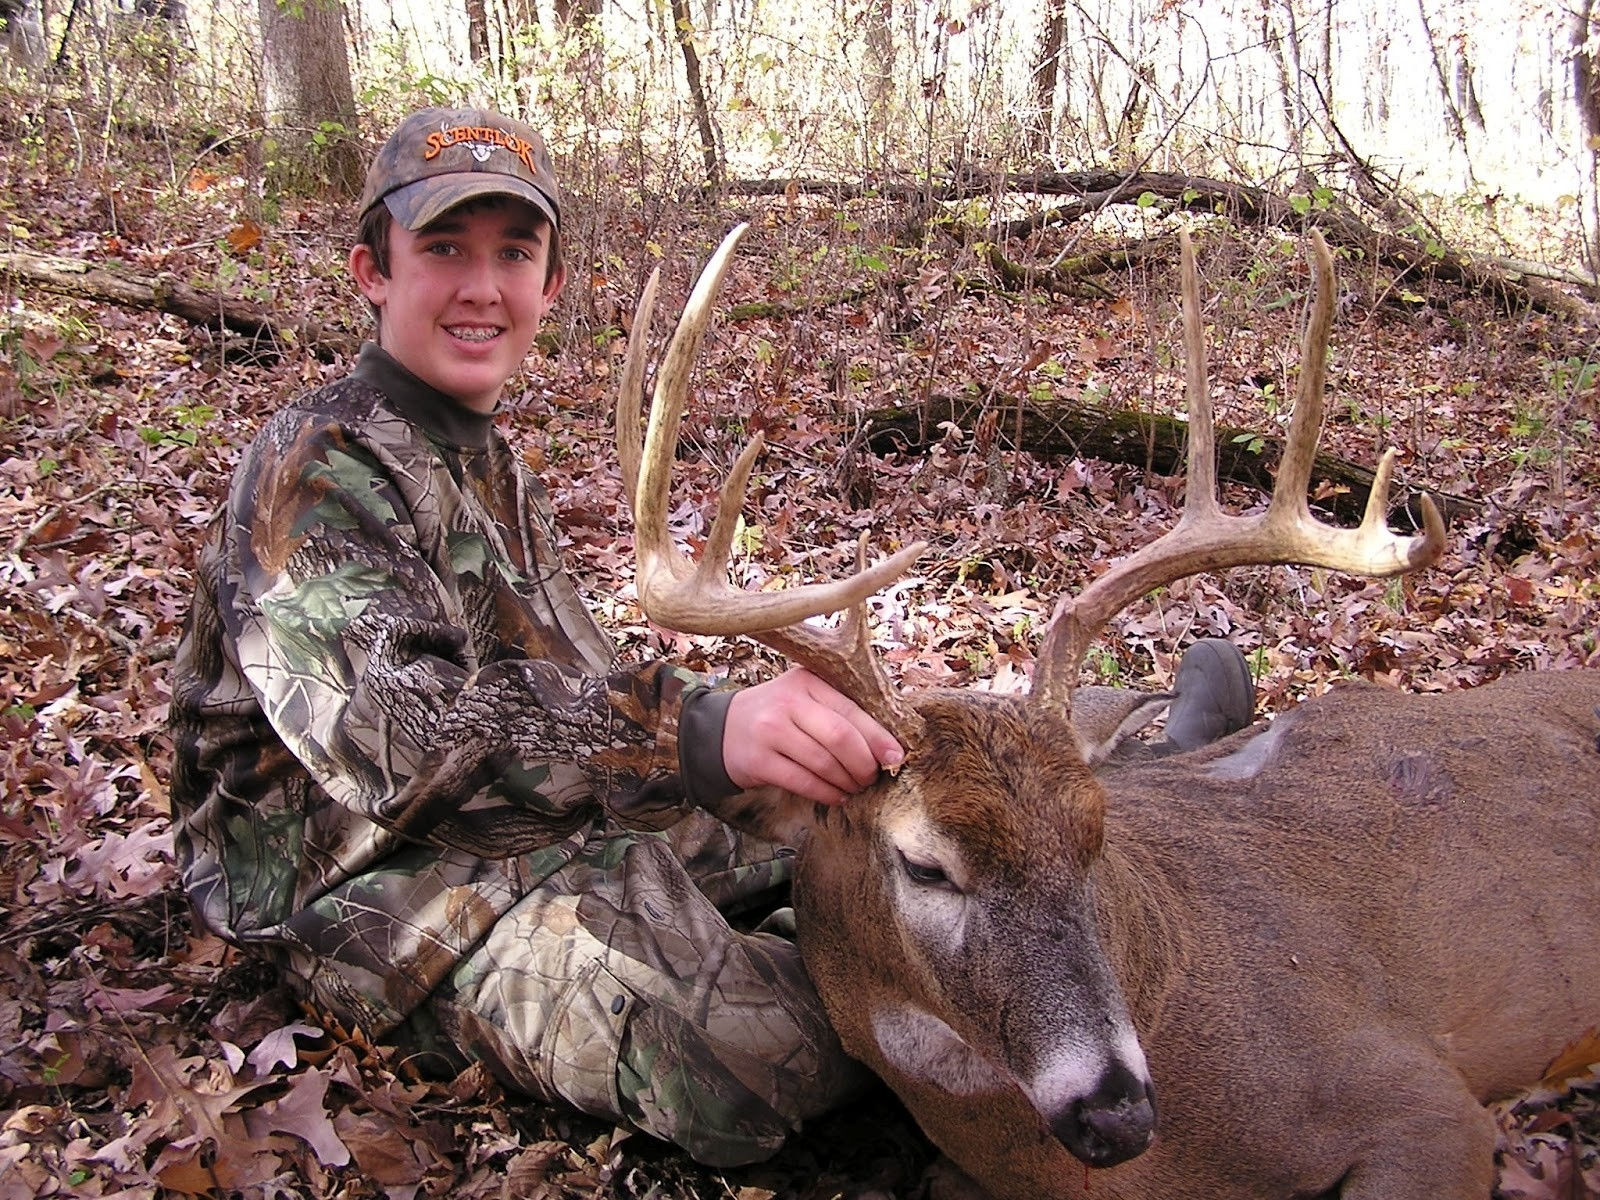 Movements Of Rutting Whitetail Bucks Rut Are Revealed  When Is The Peak Of The Rut In Pa. In 2021